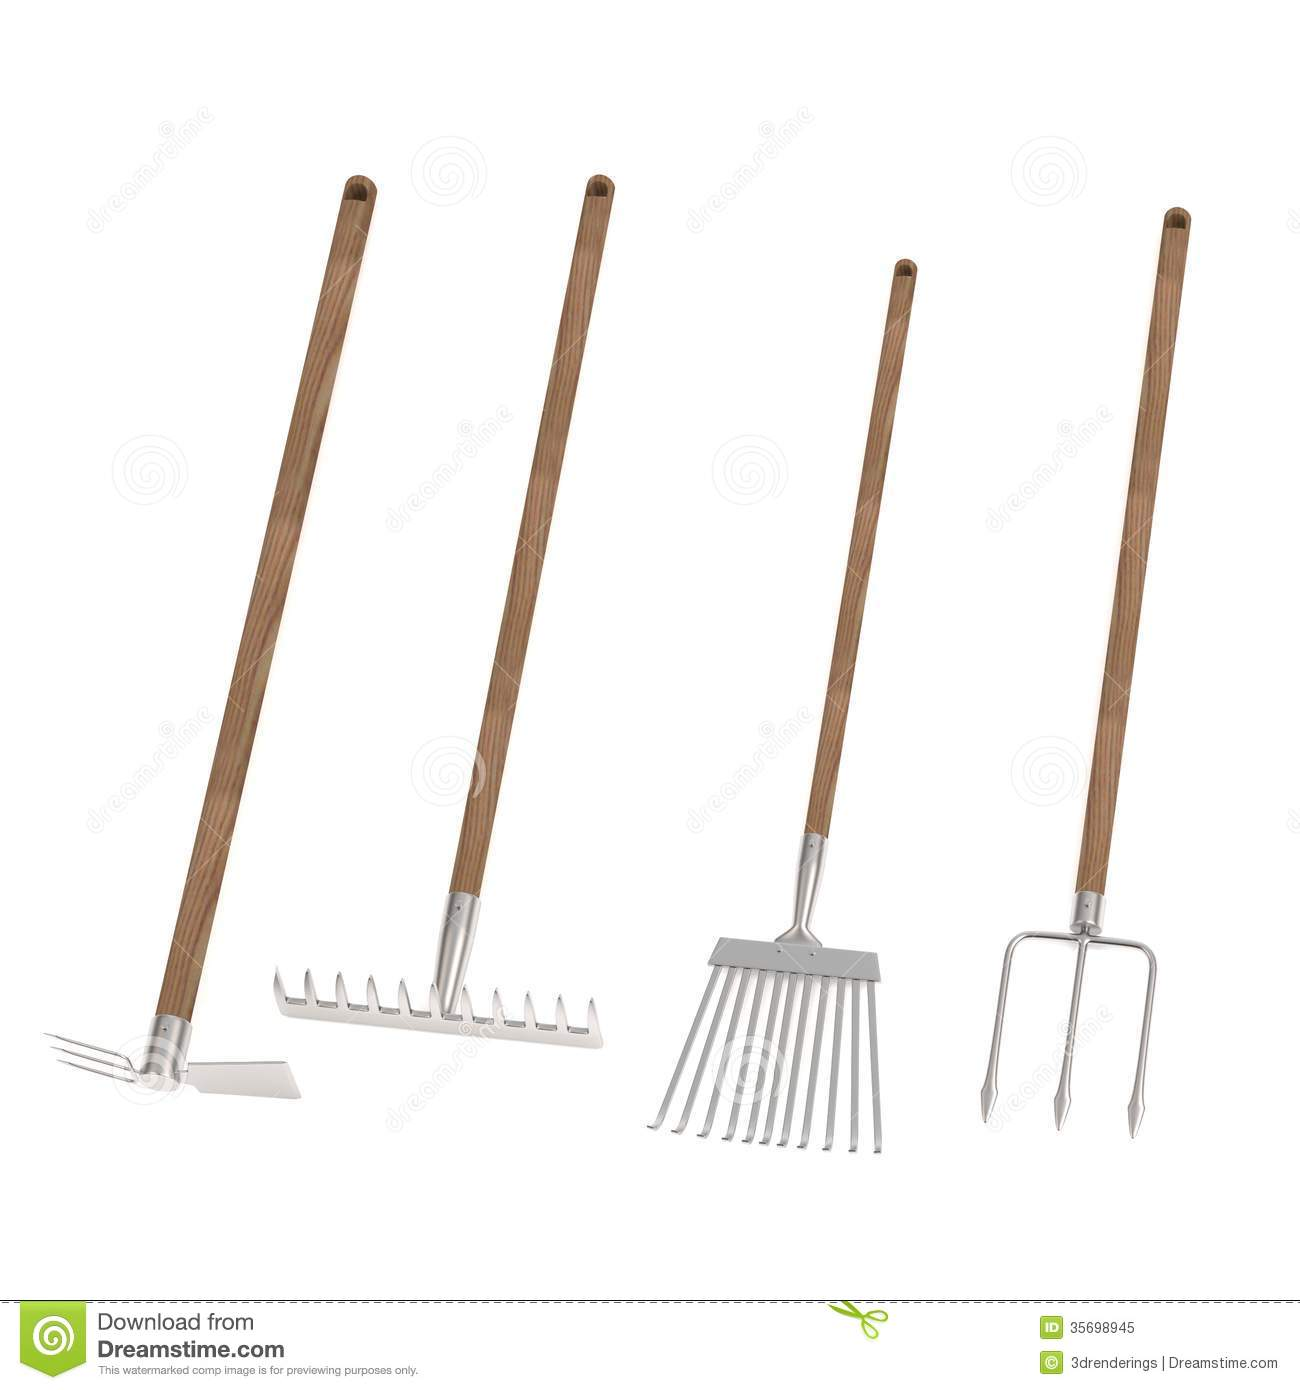 Render of 4 garden tools royalty free stock photo image for Garden design 3d tools